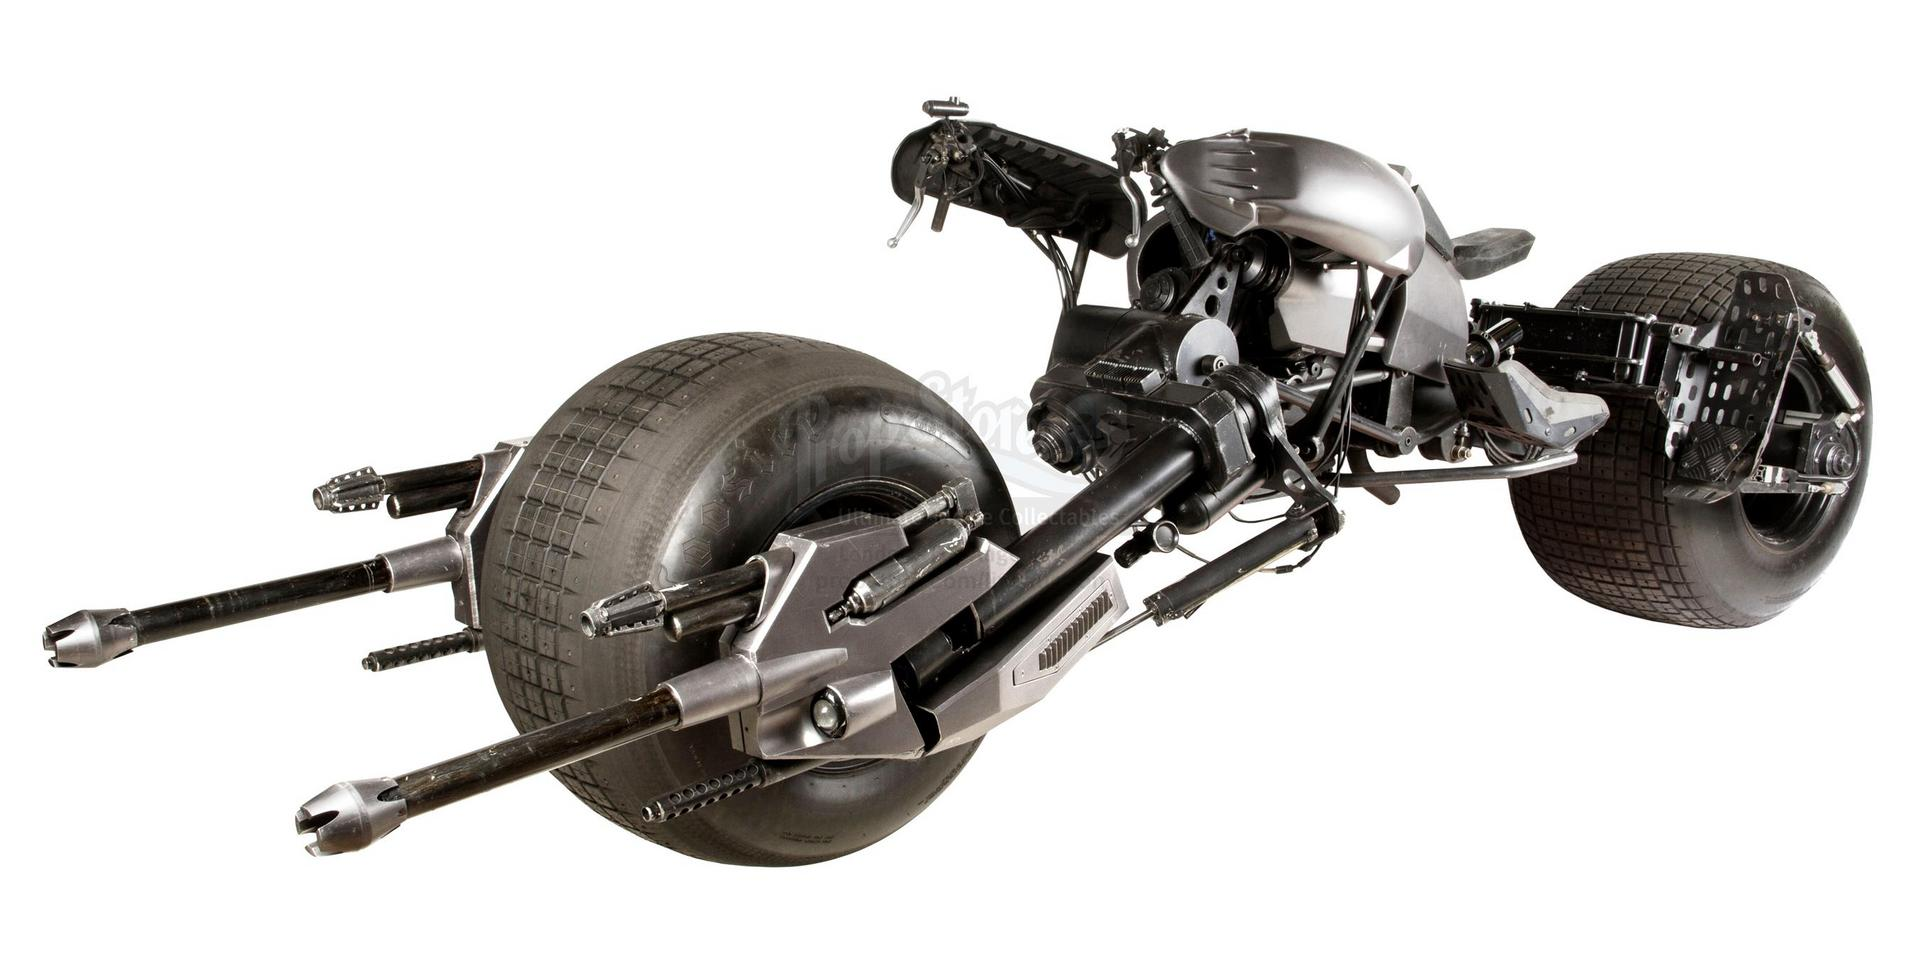 dark-knight-trilogys-batpod-motorcycle-is-up-for-auction_4